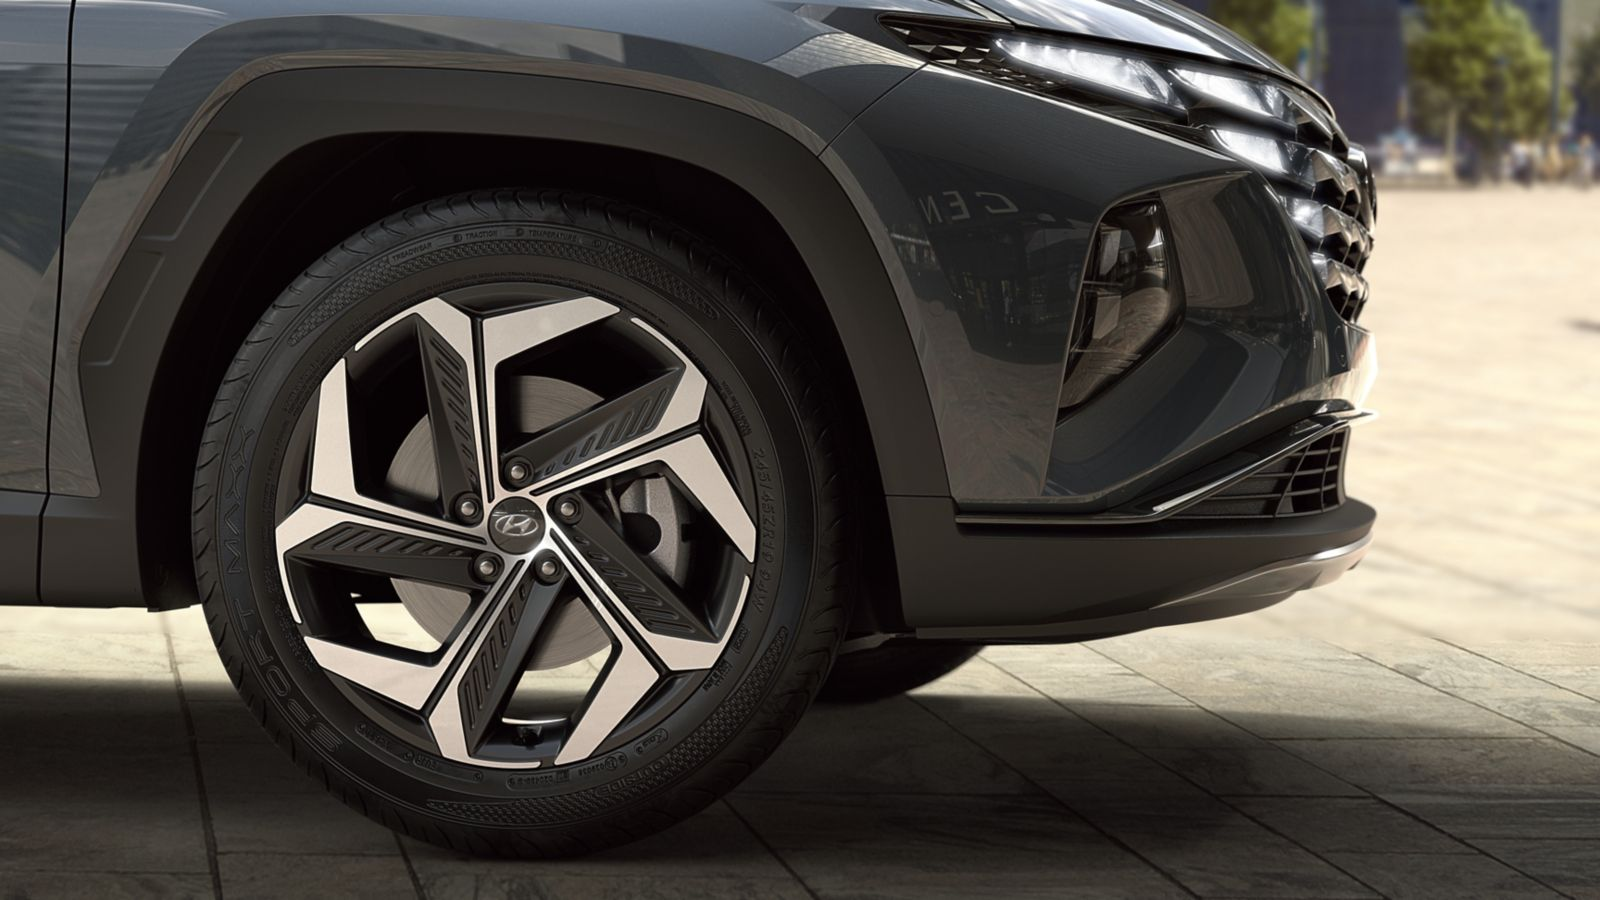 An image of the 19'' alloy wheels on the all-new Hyundai Tucson compact SUV.